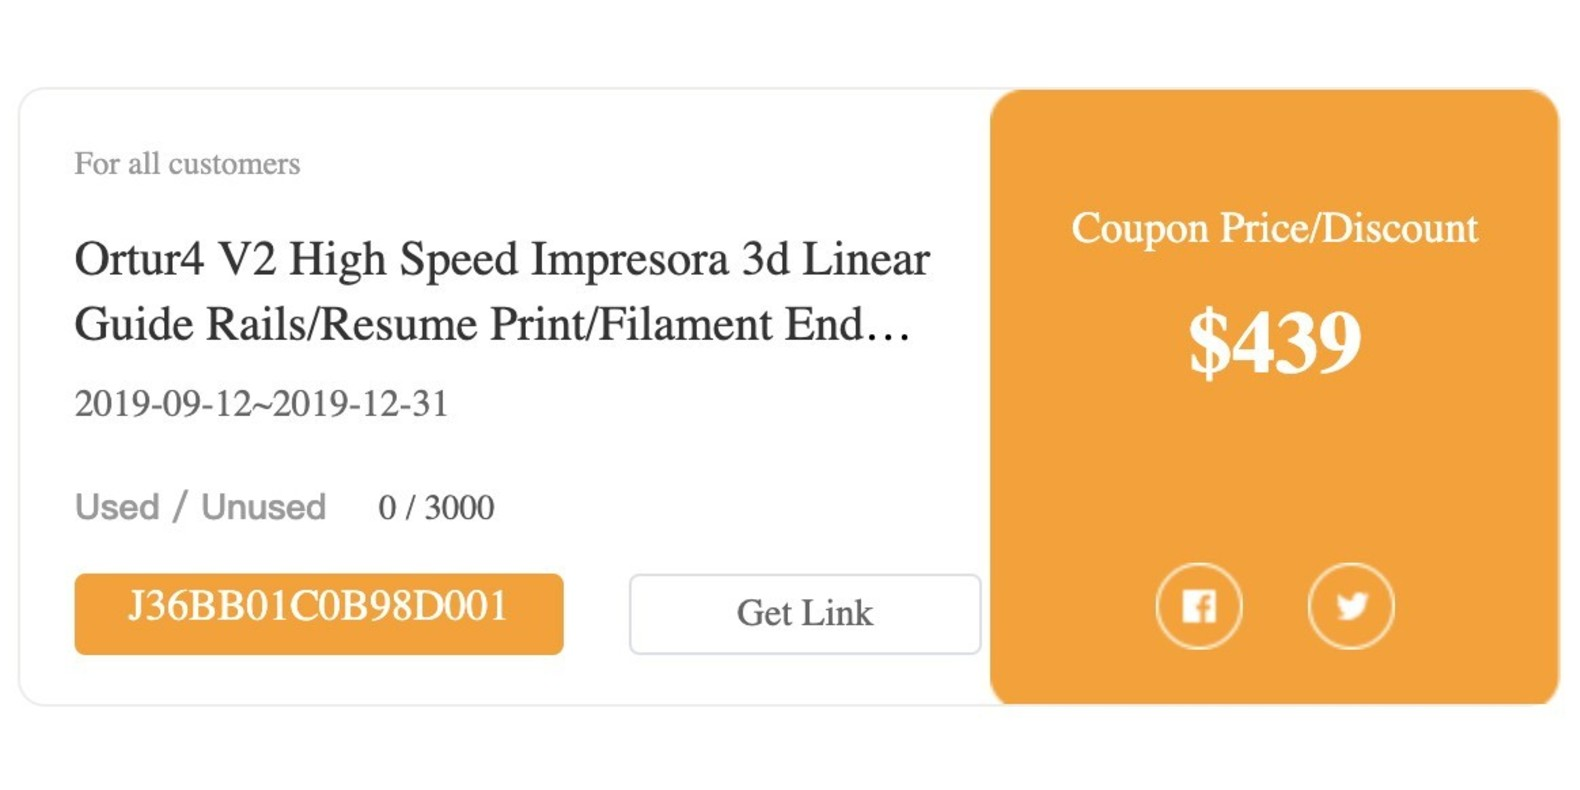 Gearbest Ortur4 V2 High Speed Impresora 3d Linear Guide Rails/Resume Print/Filament End Sensor Imprimante 3d promotion